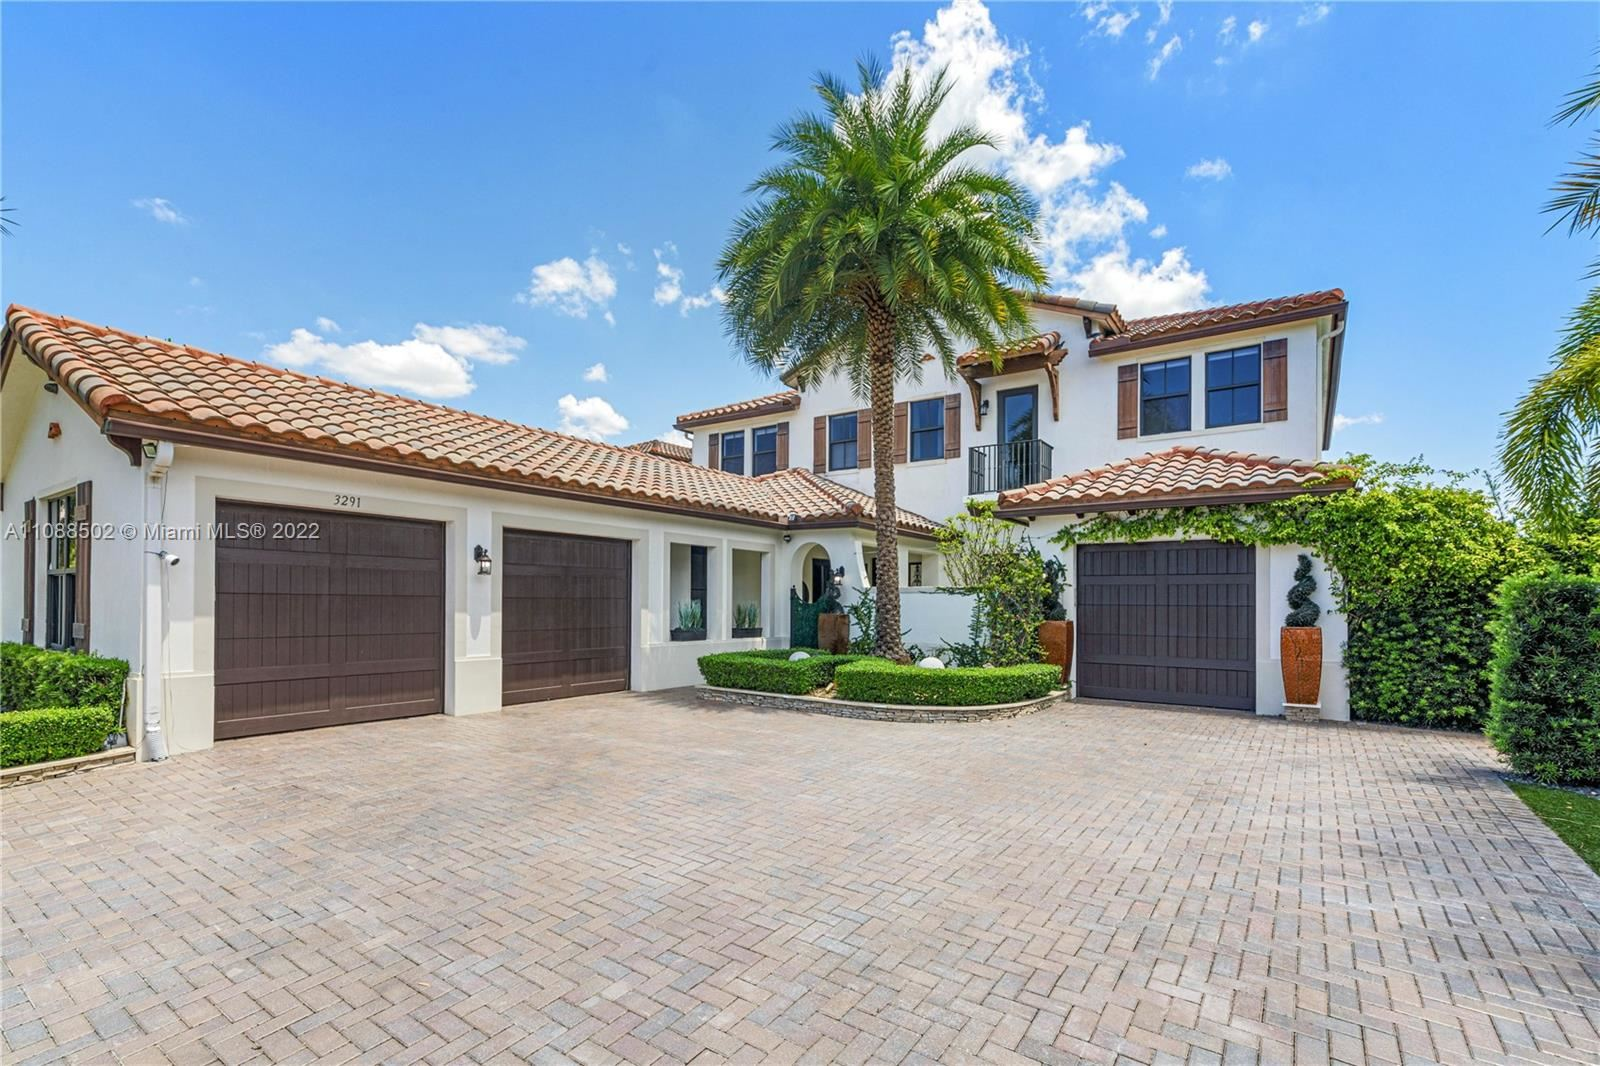 Photo of 3291 NW 82nd Way, Cooper City, FL 33024 (MLS # A11088502)